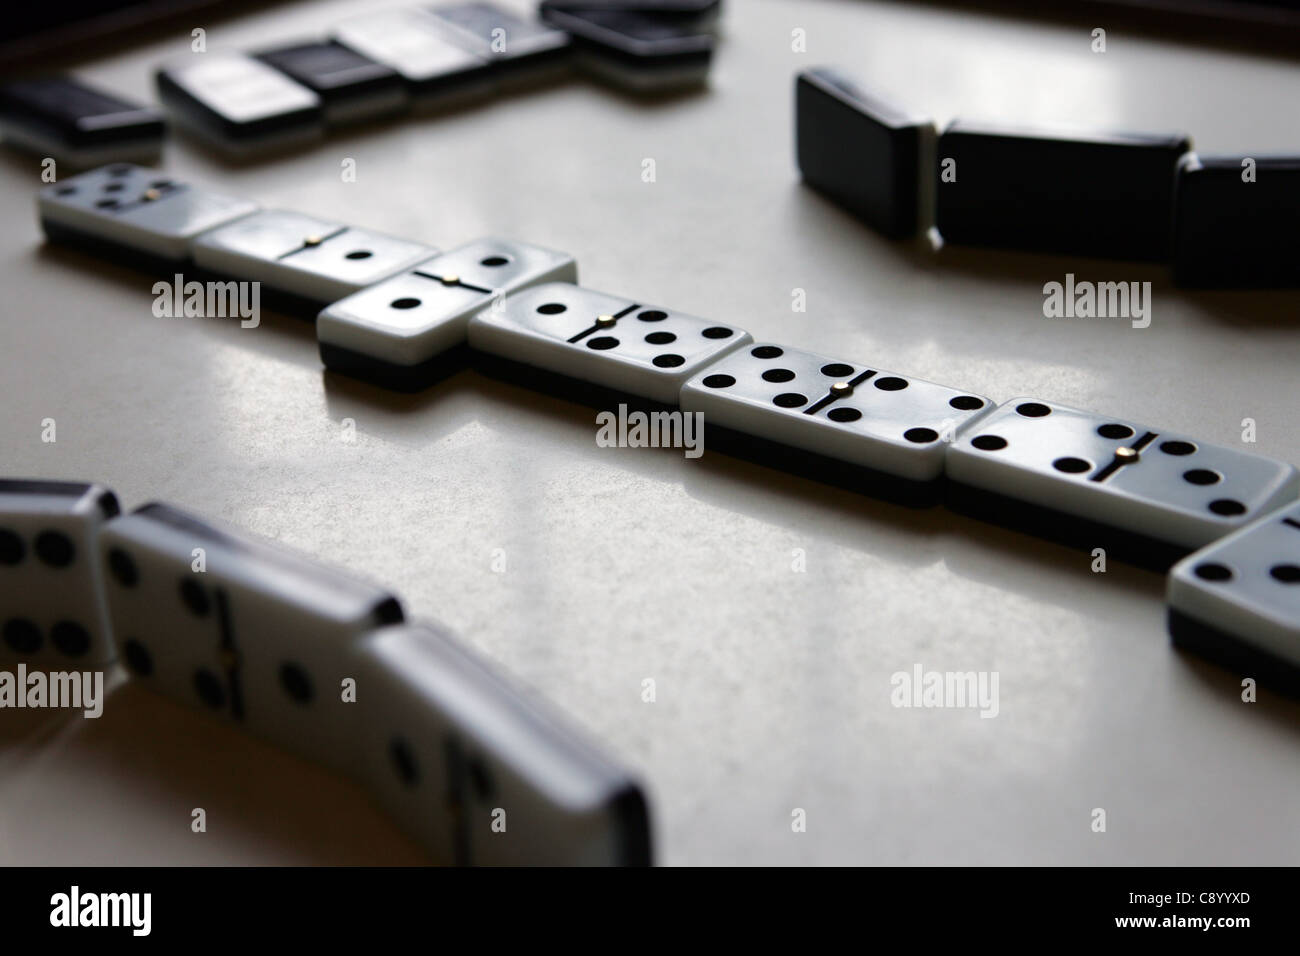 Dominoes in a public house, North East, England. - Stock Image